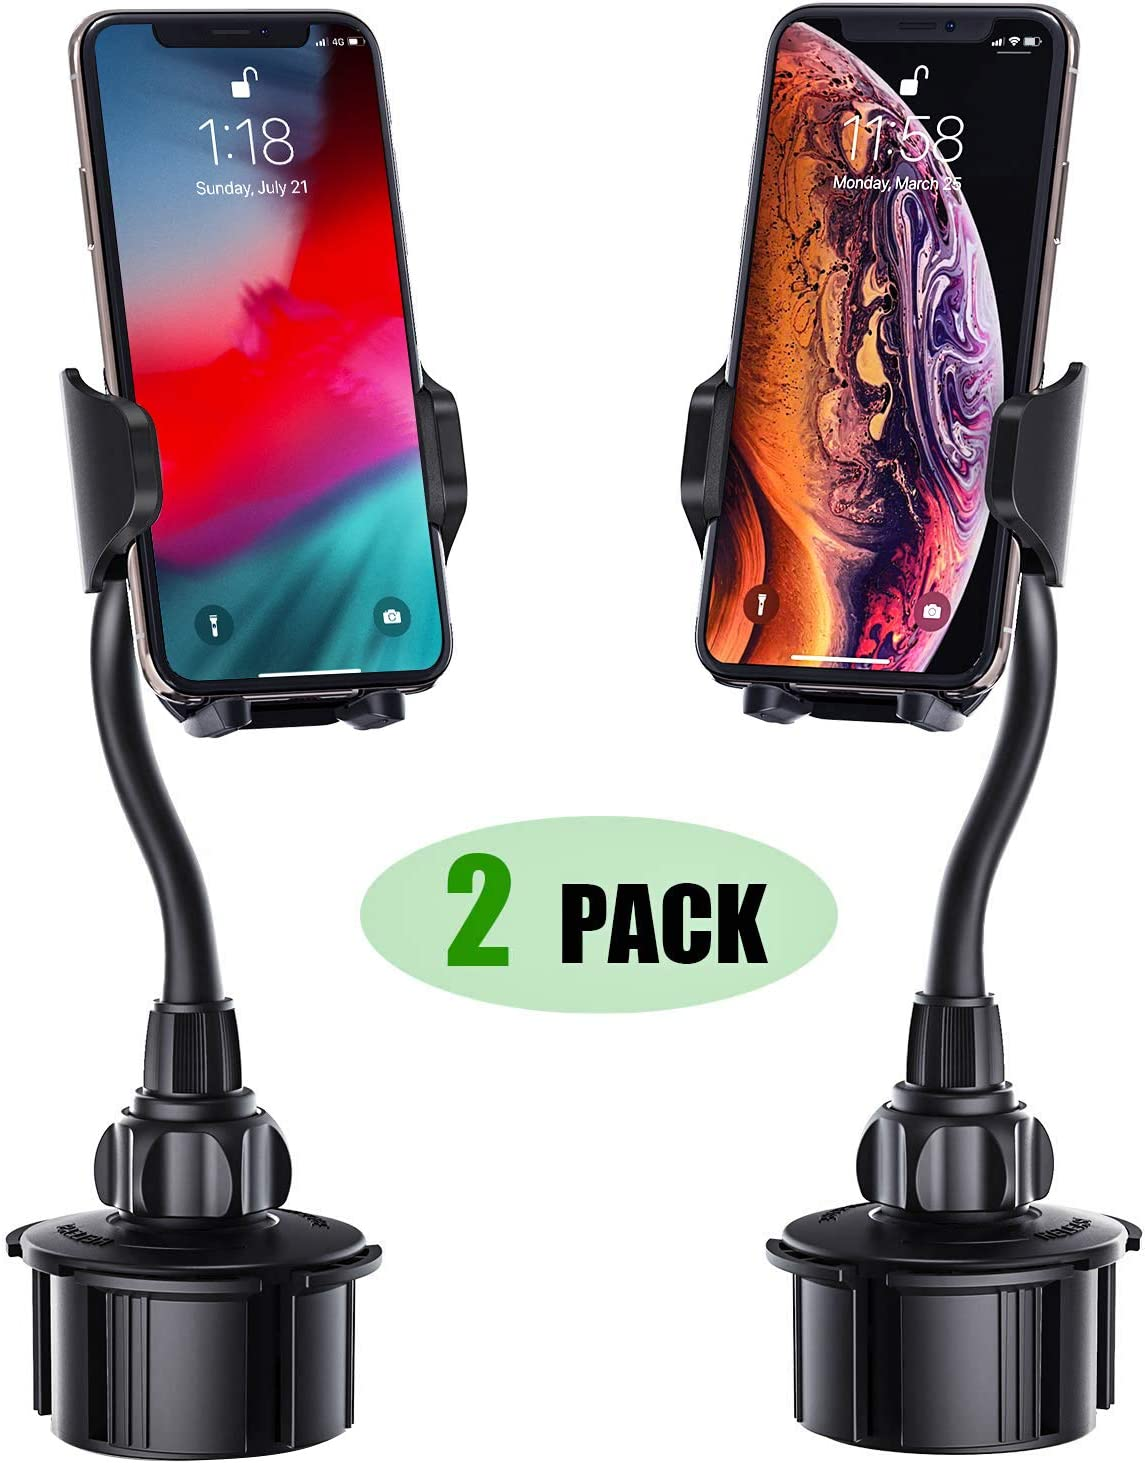 Cell Phone Holder for Car, [2 Pack] Adjustable Gooseneck Car Phone Mount Universal Cup Phone Holder Compatible with iPhone Xs XR X 8 8+ 7 7+ SE 6s 6+ 6,Galaxy S10 S9 S8 S7 S6 S5 S4 Note 10 9 8 LG etc